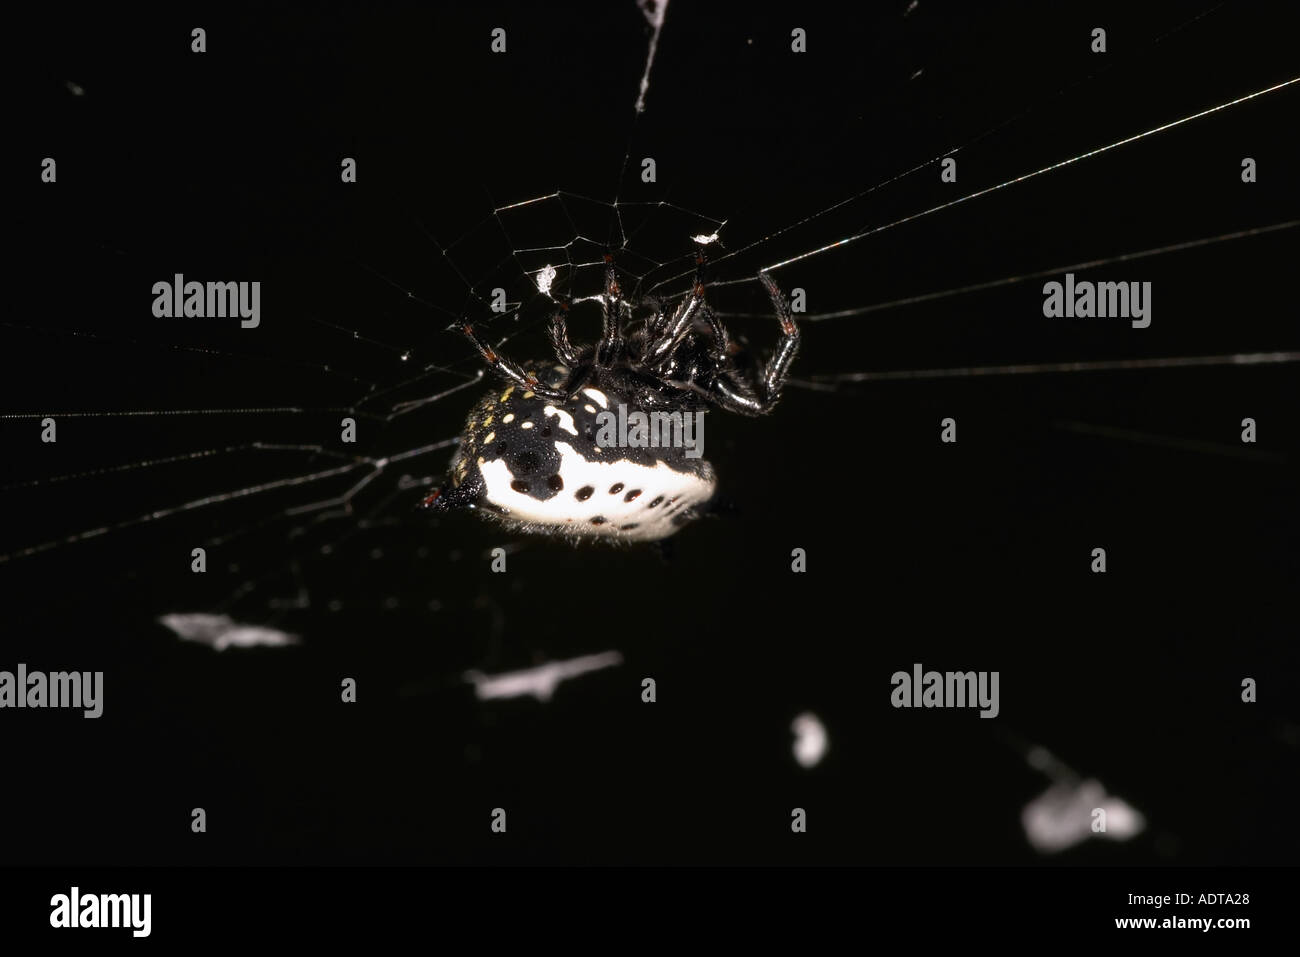 Crab like Spiny Orb Weaver building a web Stock Photo